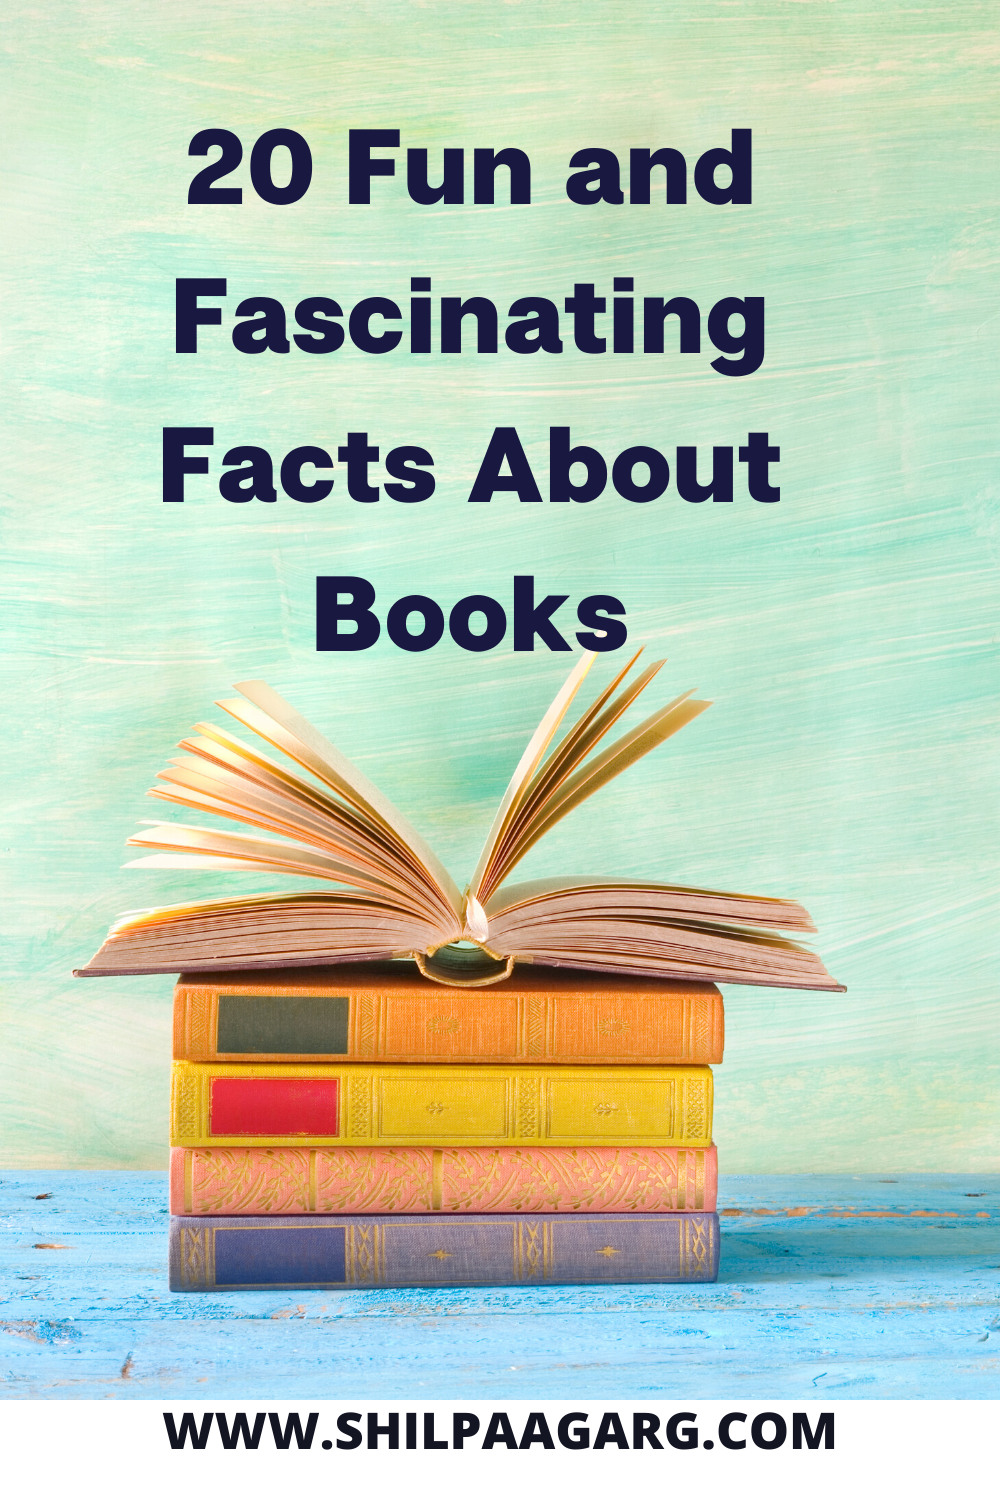 20 Fun and Fascinating Facts About Books